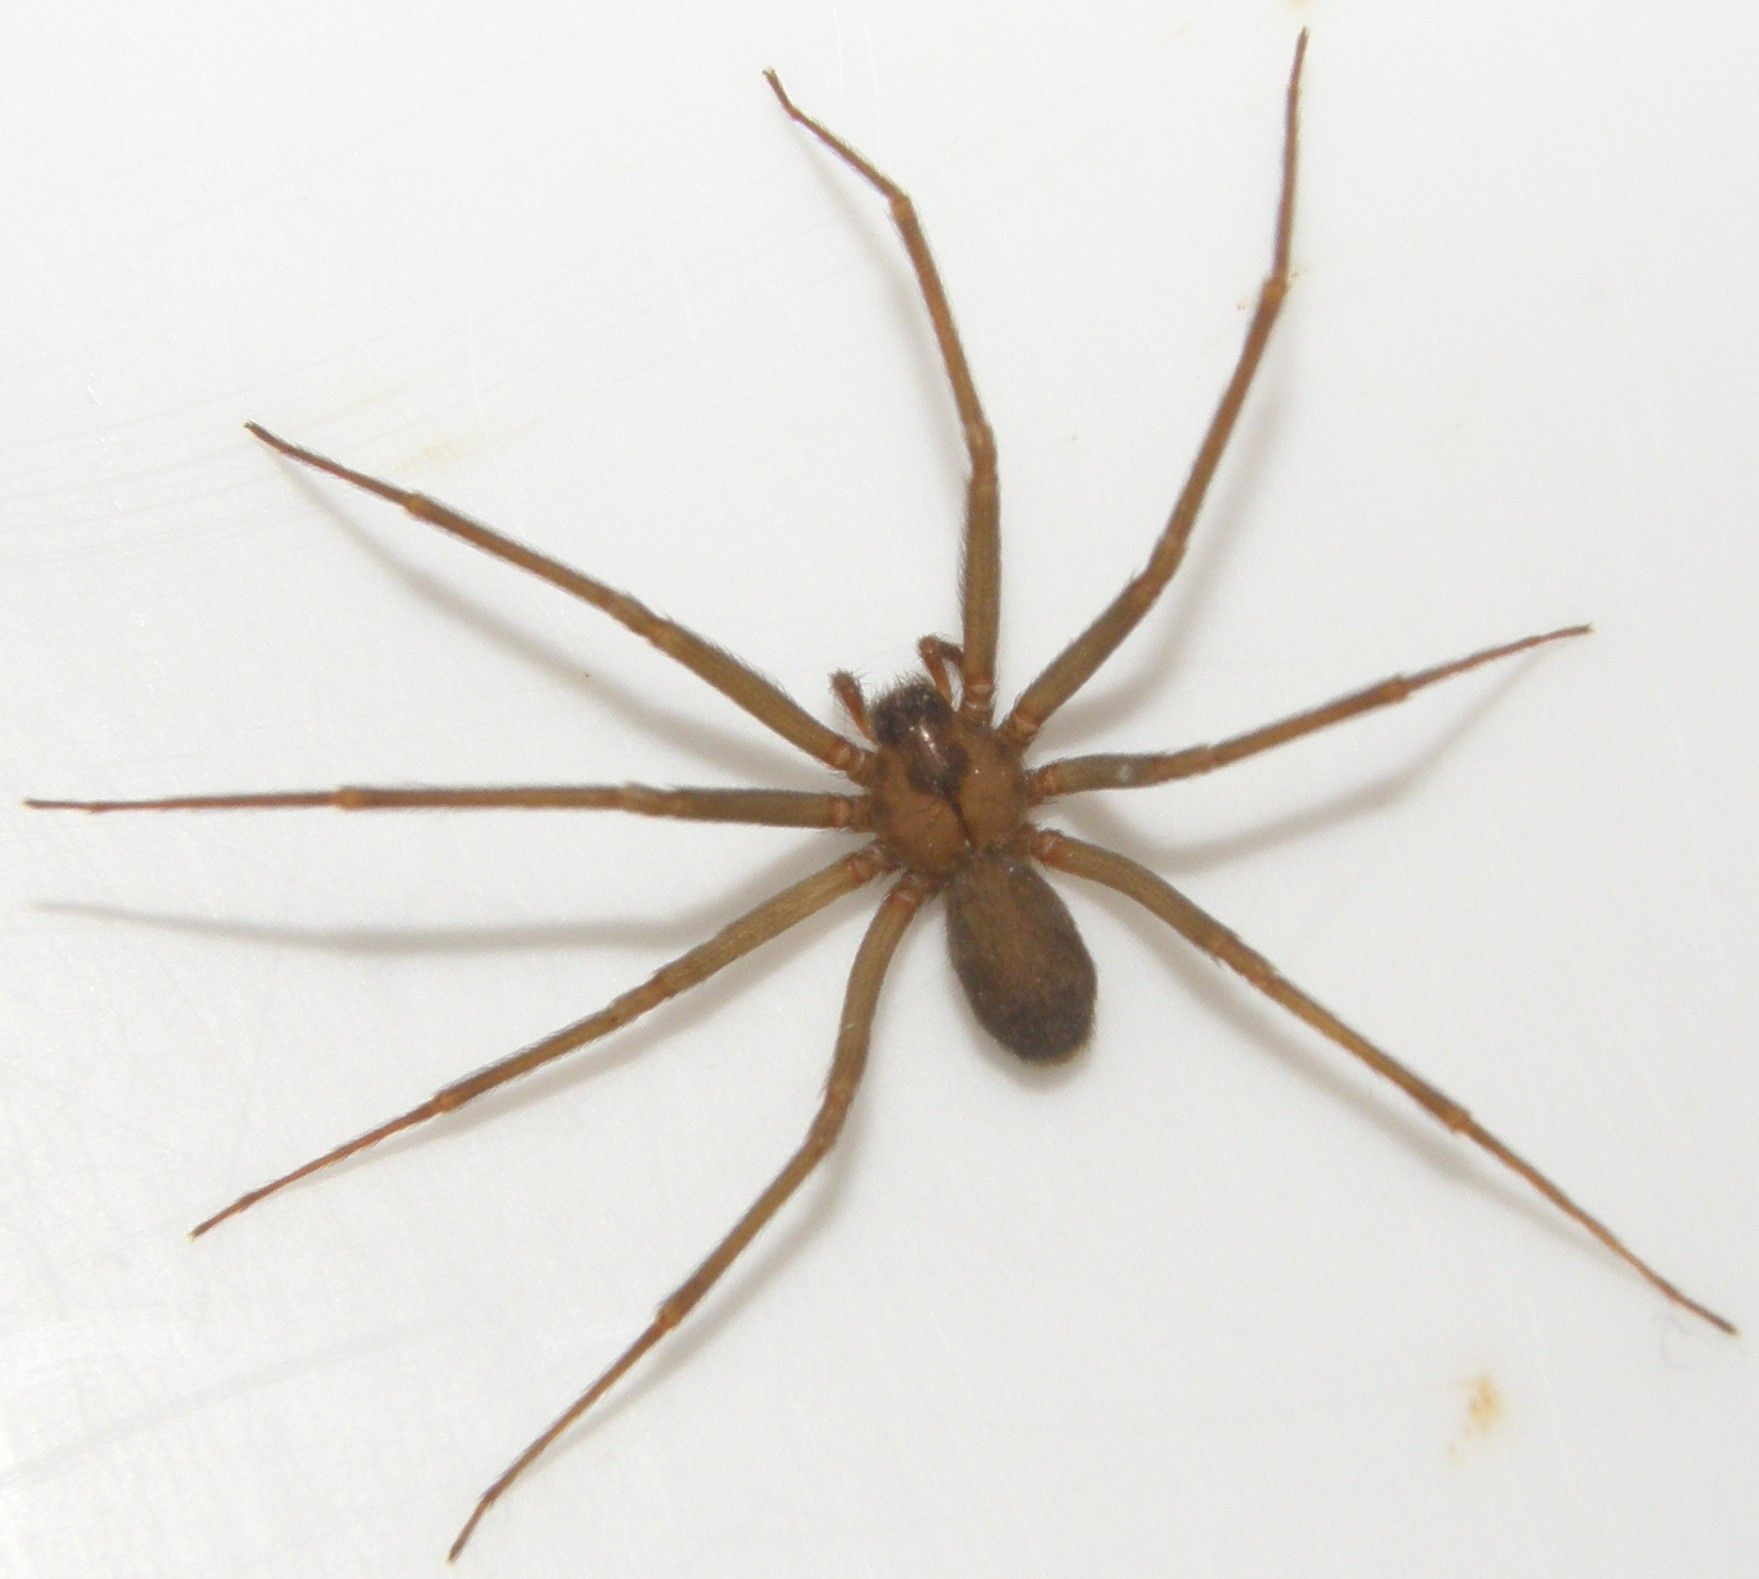 southern house and brown recluse spider pictures to pin on